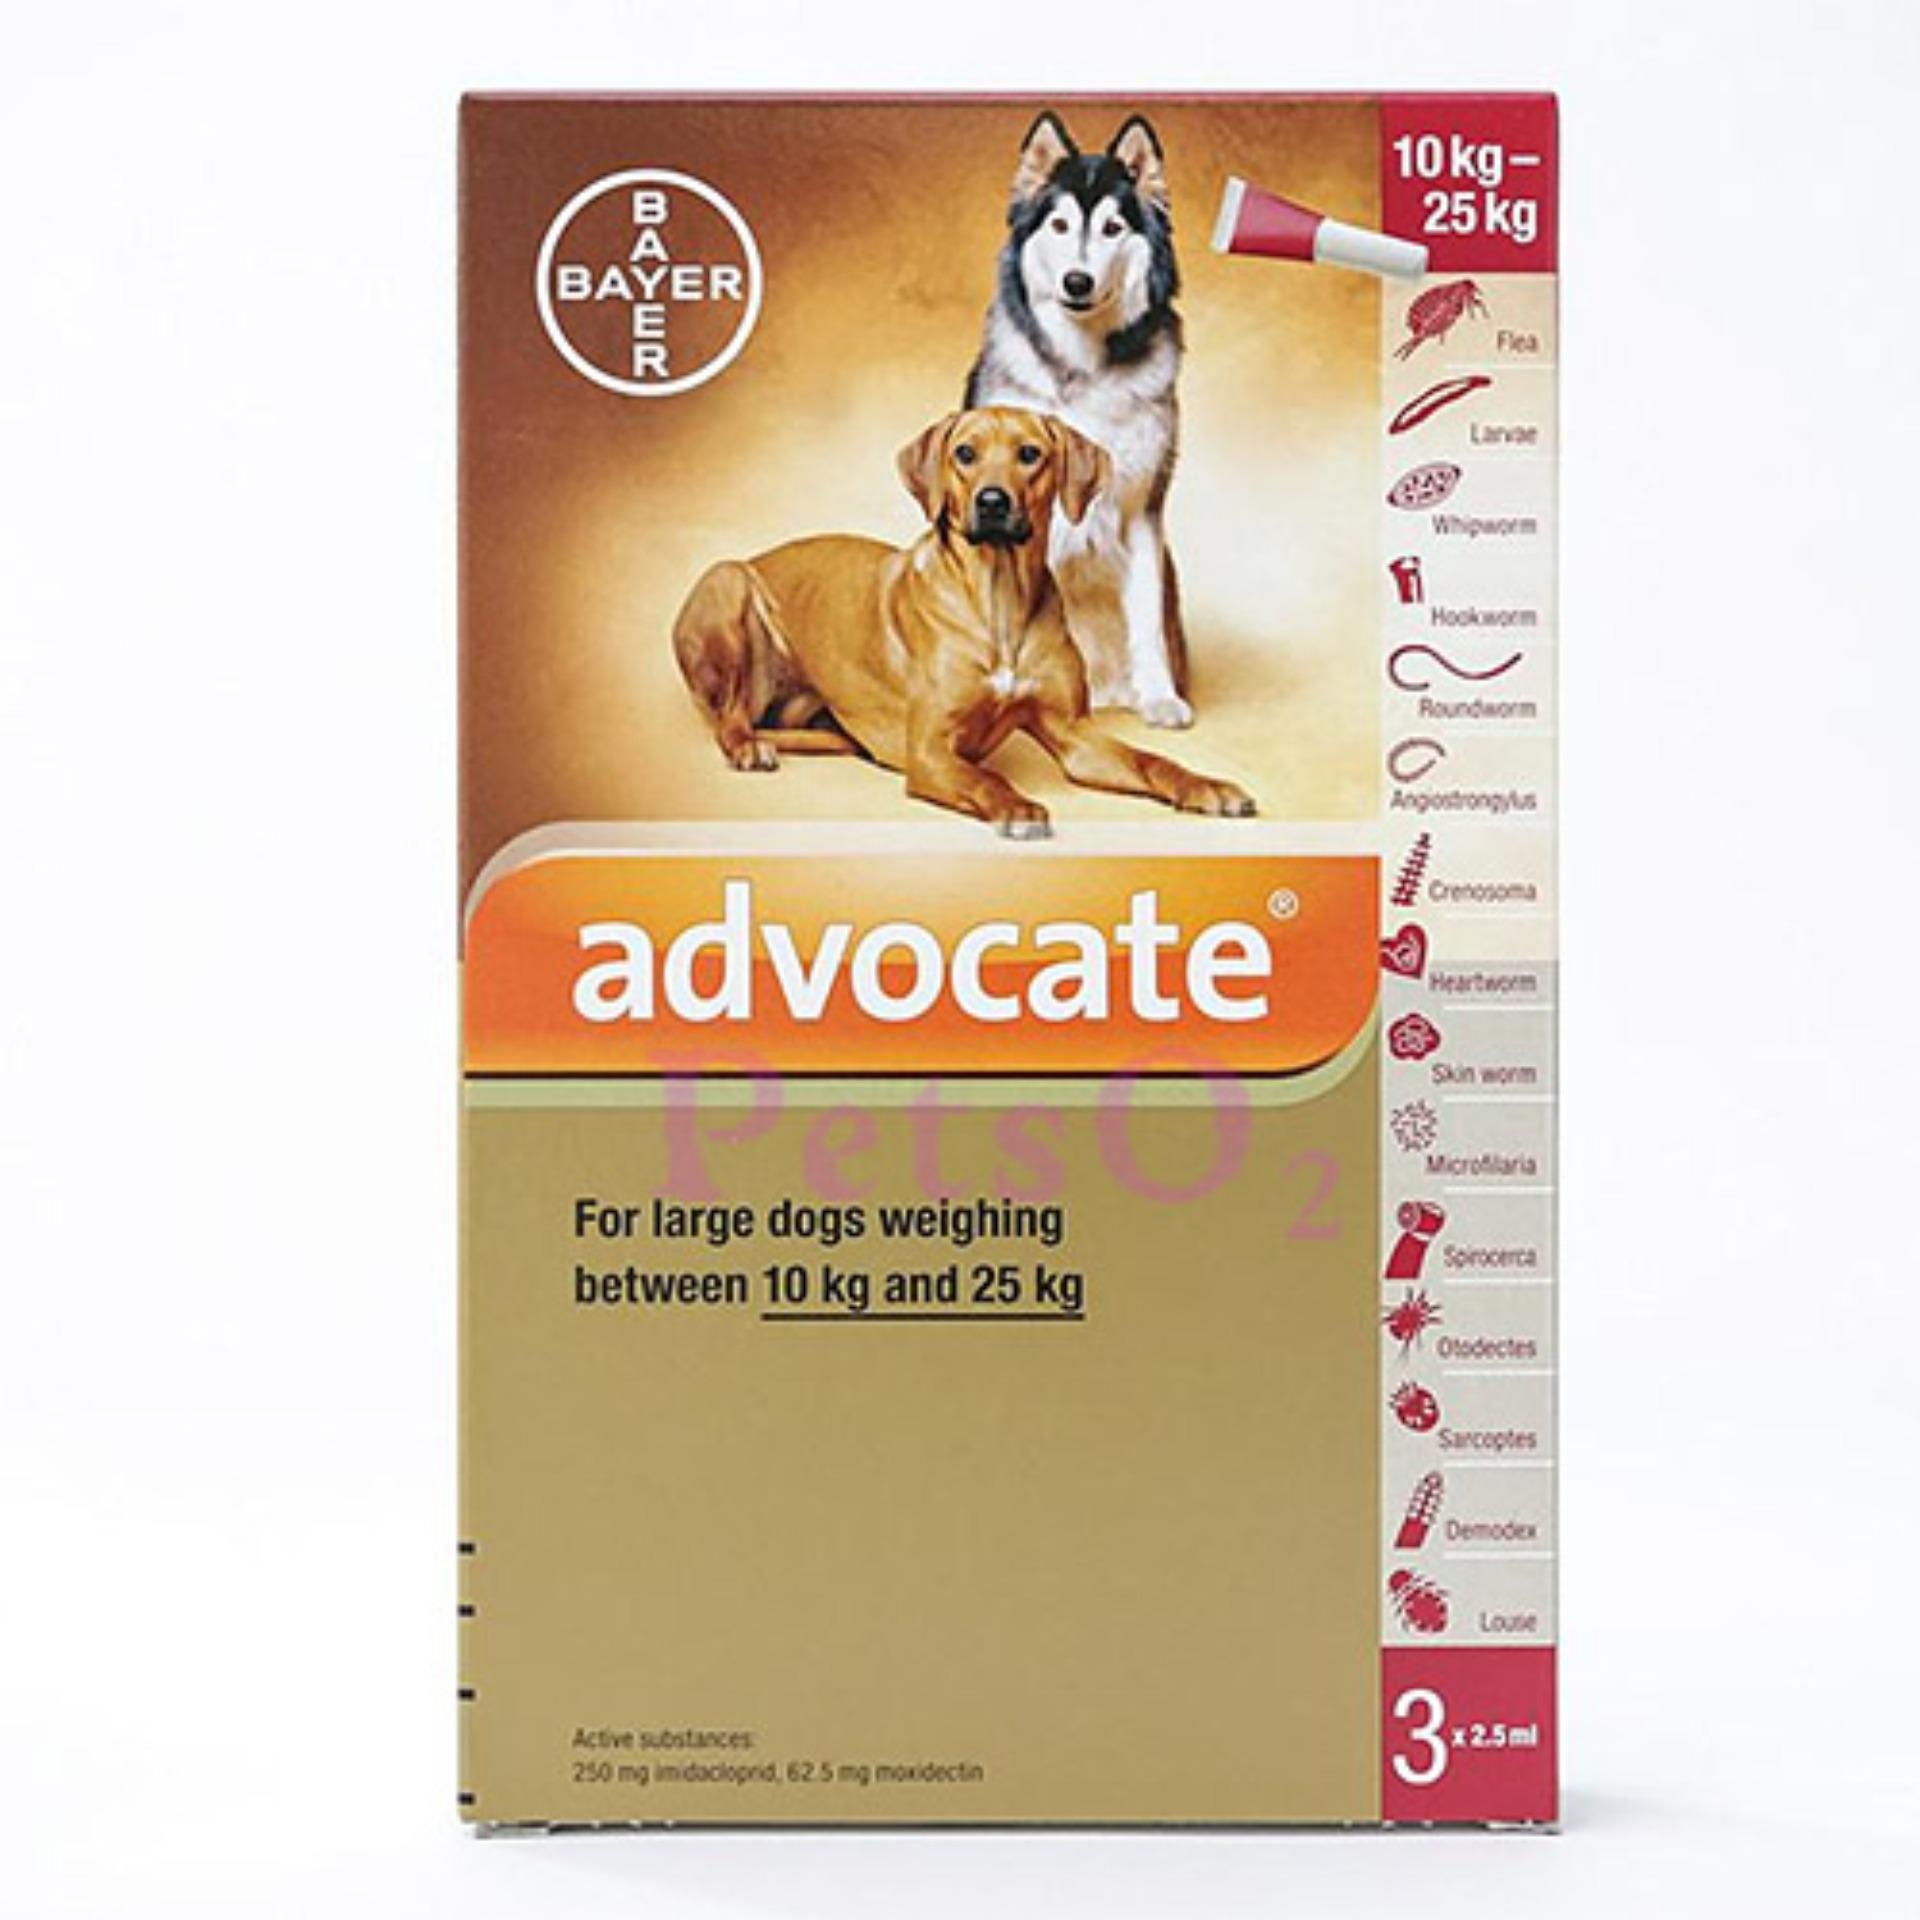 Bayer Advocate Flea And Heartworm Treatment For Dogs (10 - 25kg).